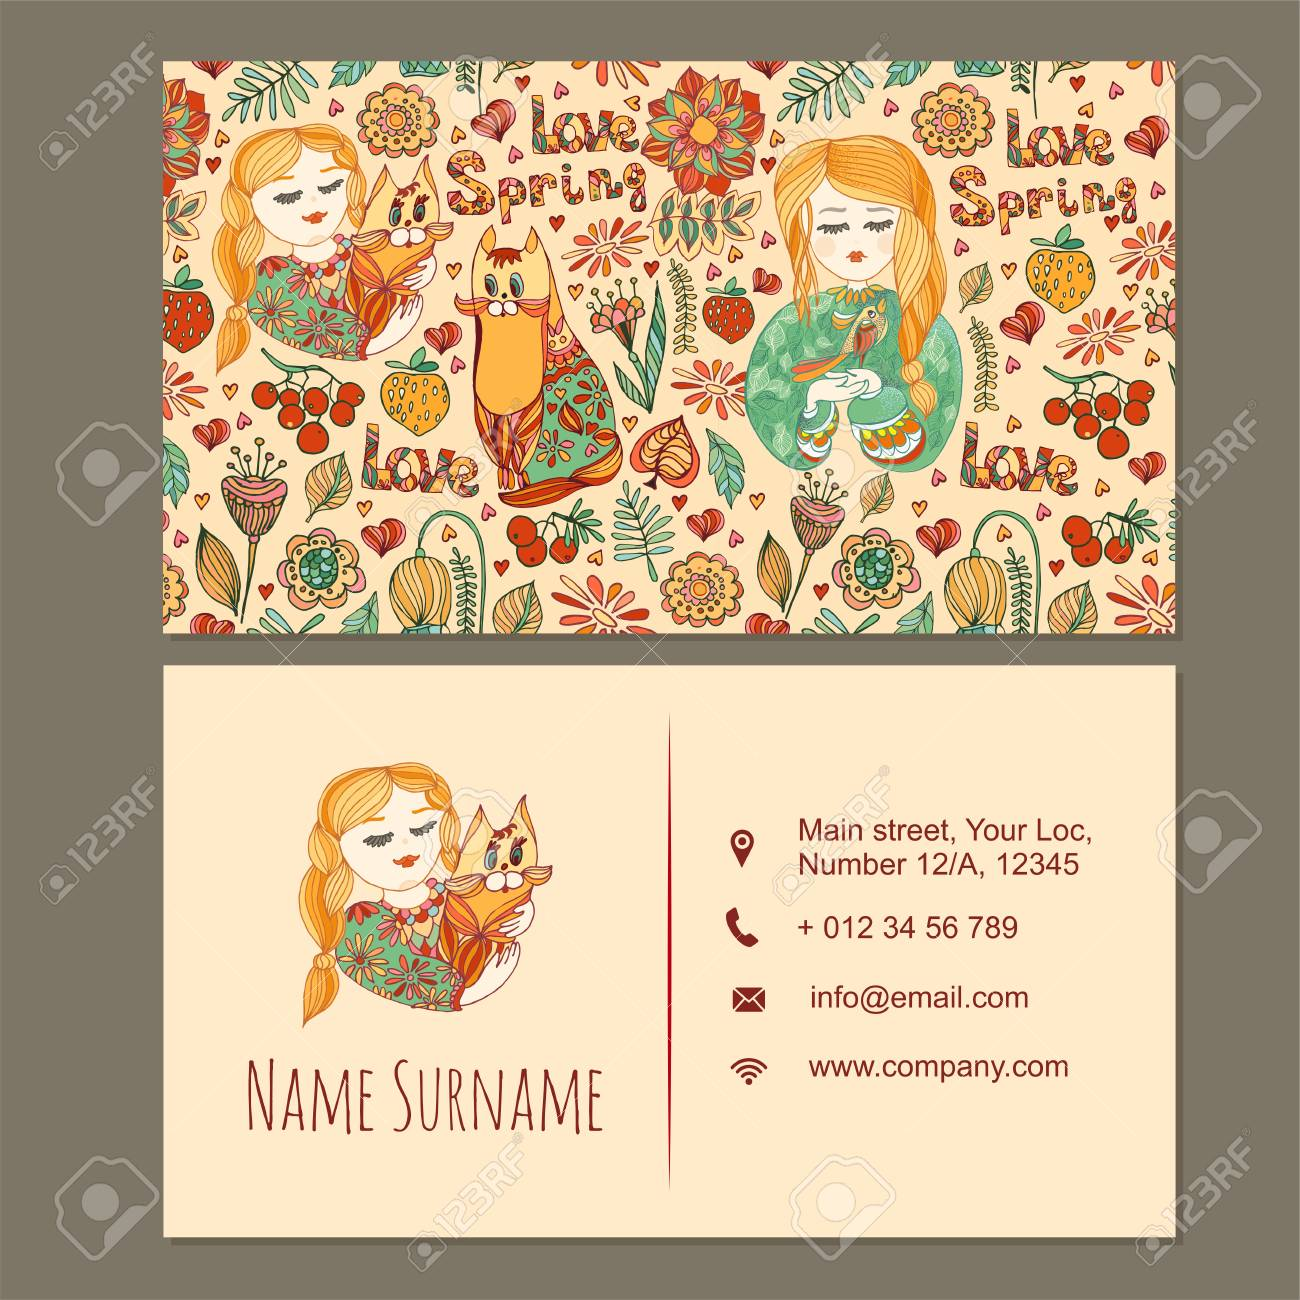 Visiting card business card template with cute hand drawn floral vector visiting card business card template with cute hand drawn floral pattern cafe or boutique branding elements flyer design with flowersgirlscat accmission Choice Image